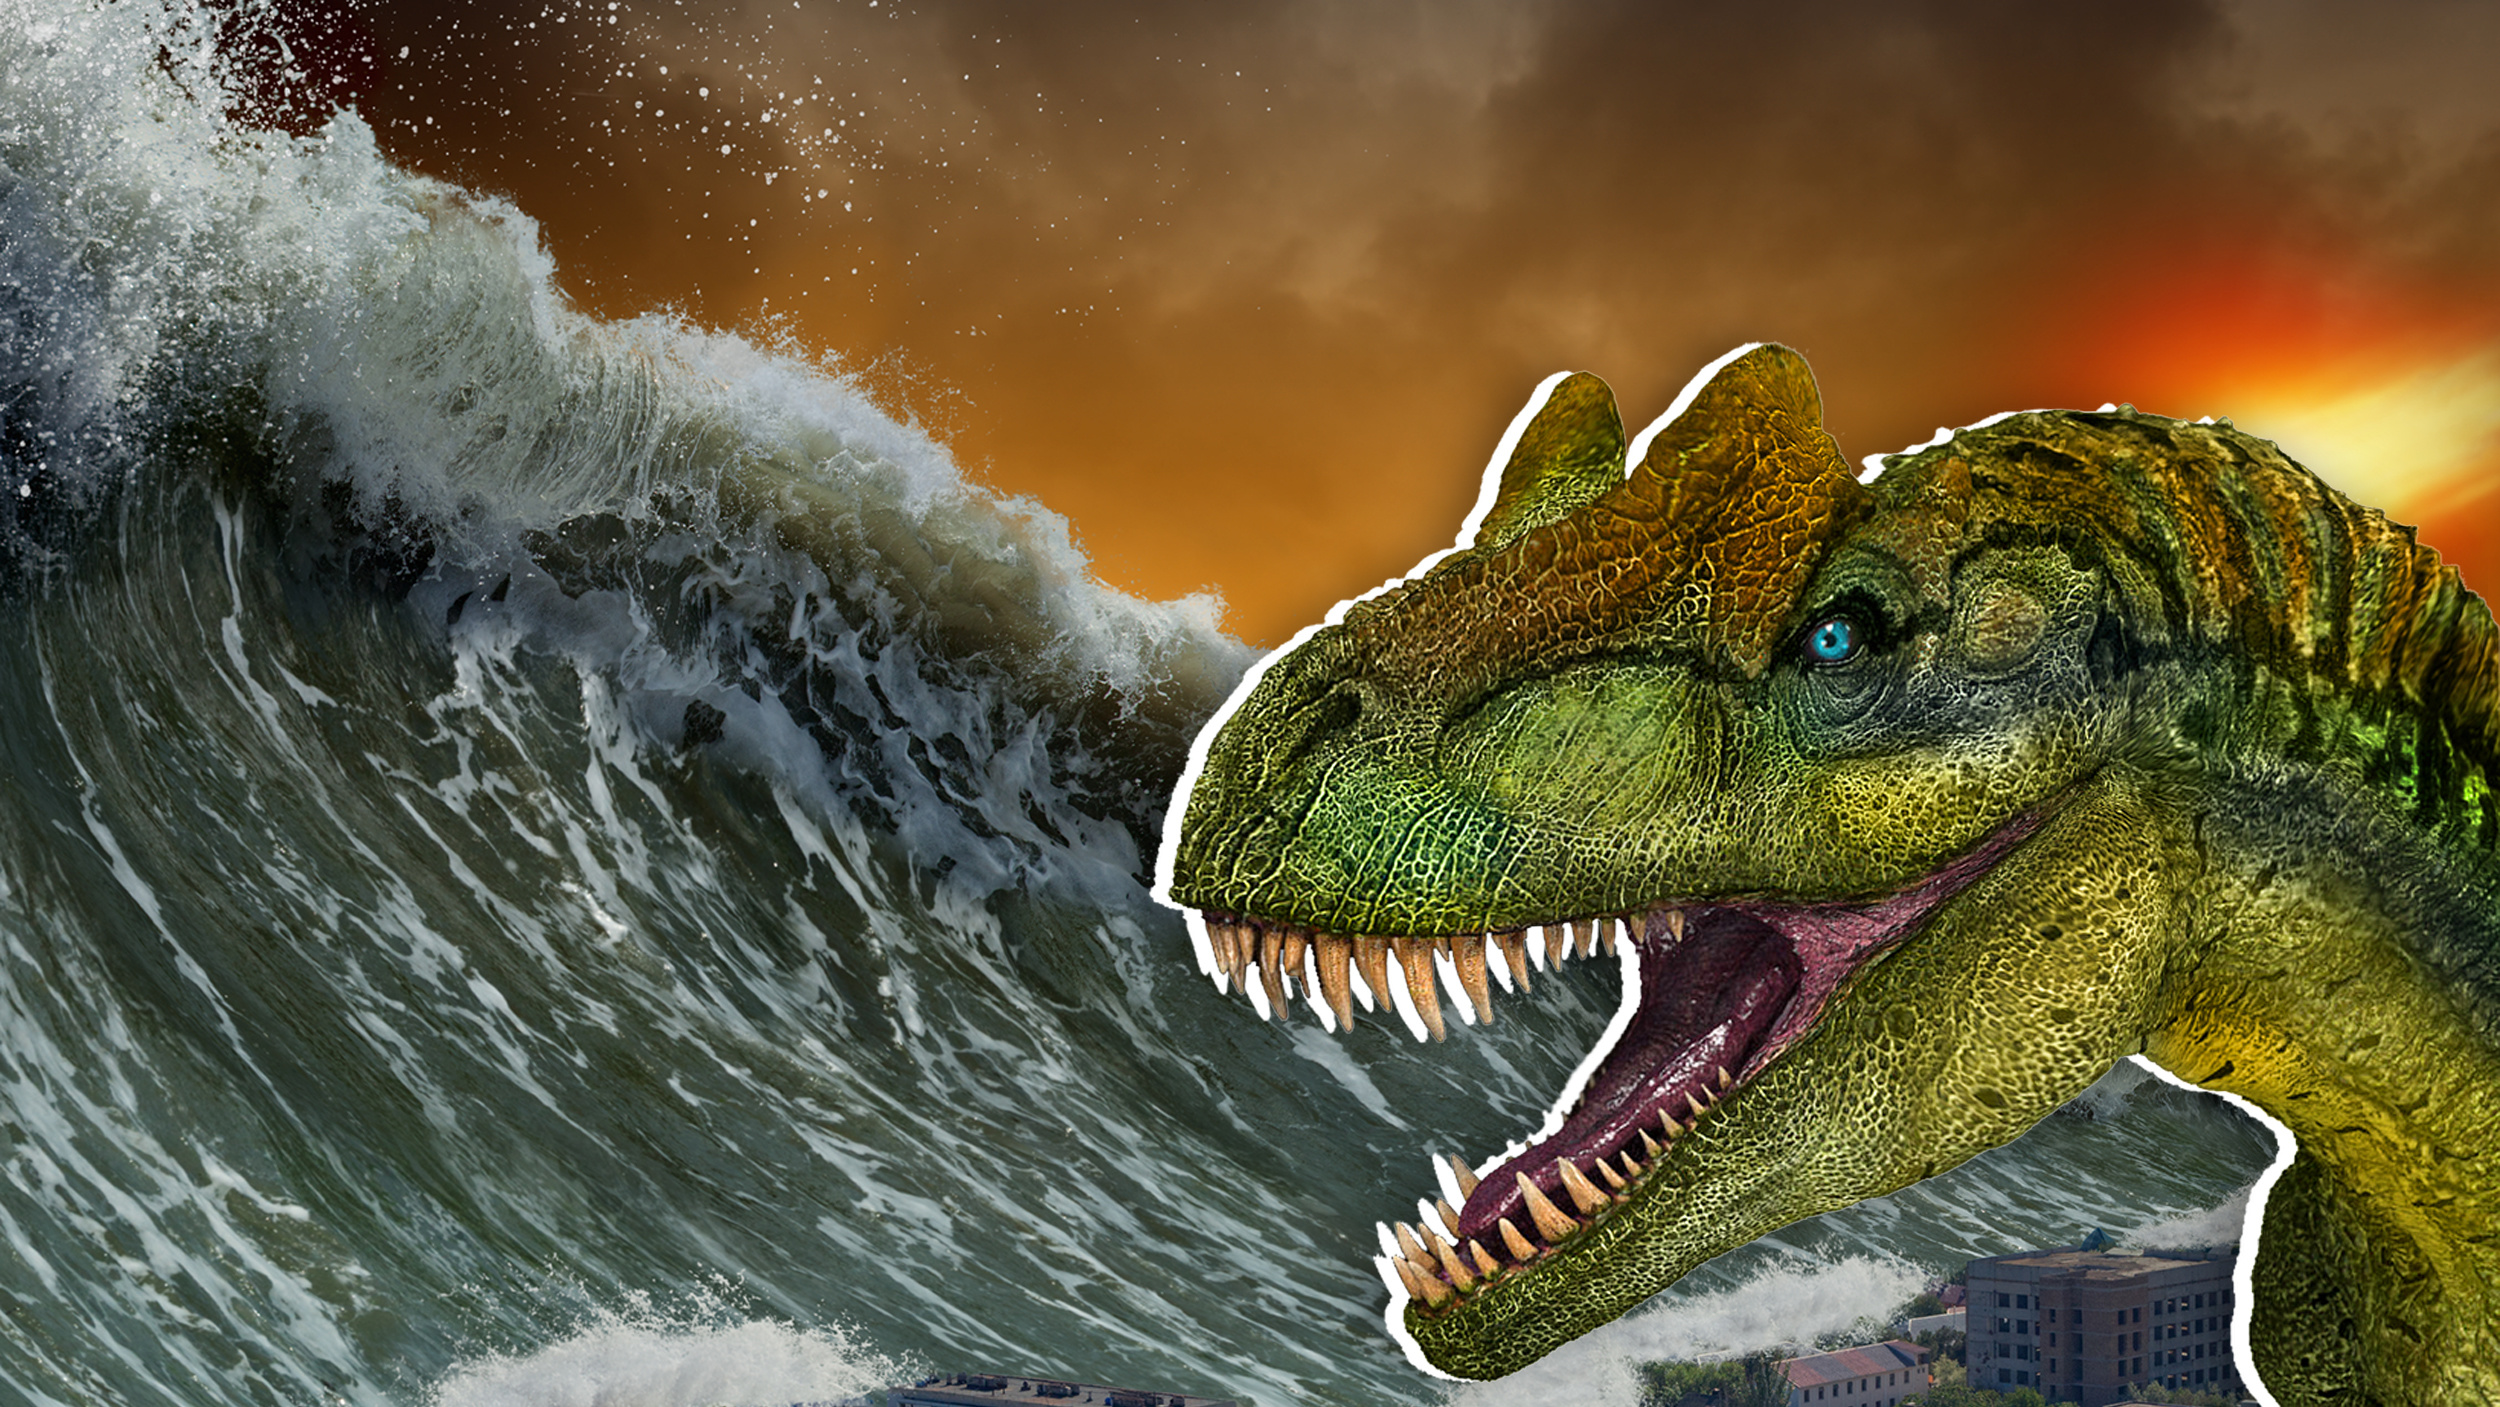 Asteroid that wiped out the dinosaurs caused a mile-high tsunami